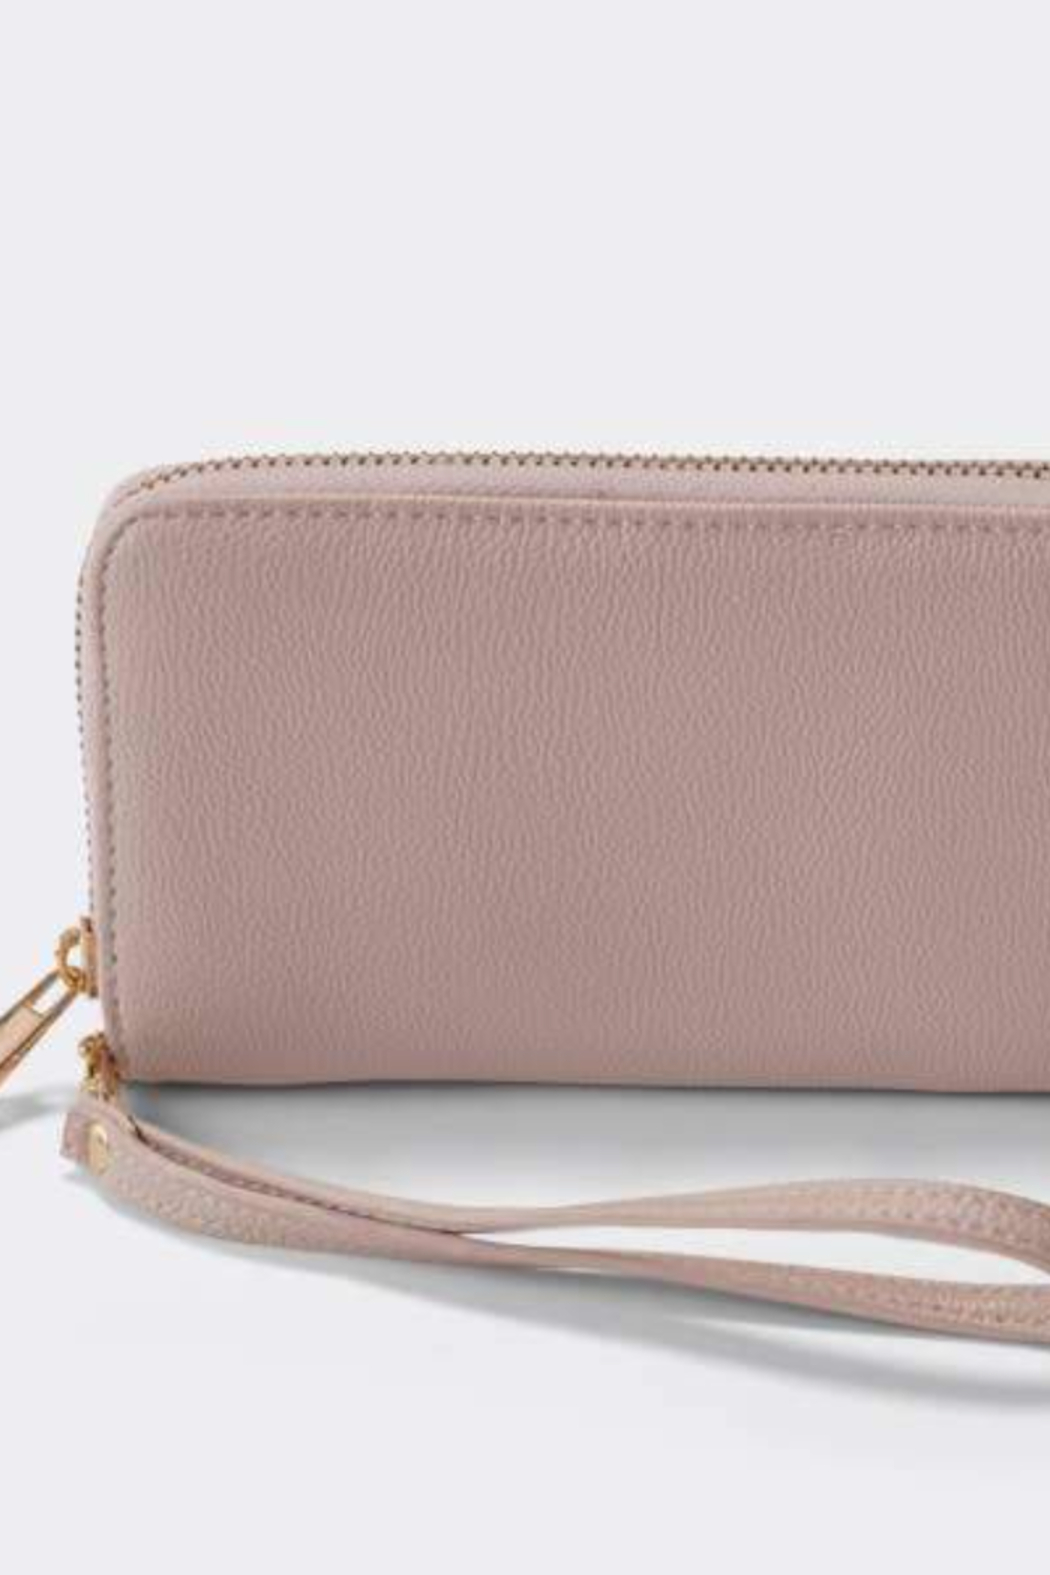 Boon Supply Vegan Leather Wristlet w/Wrist Strap - Side Cropped Image